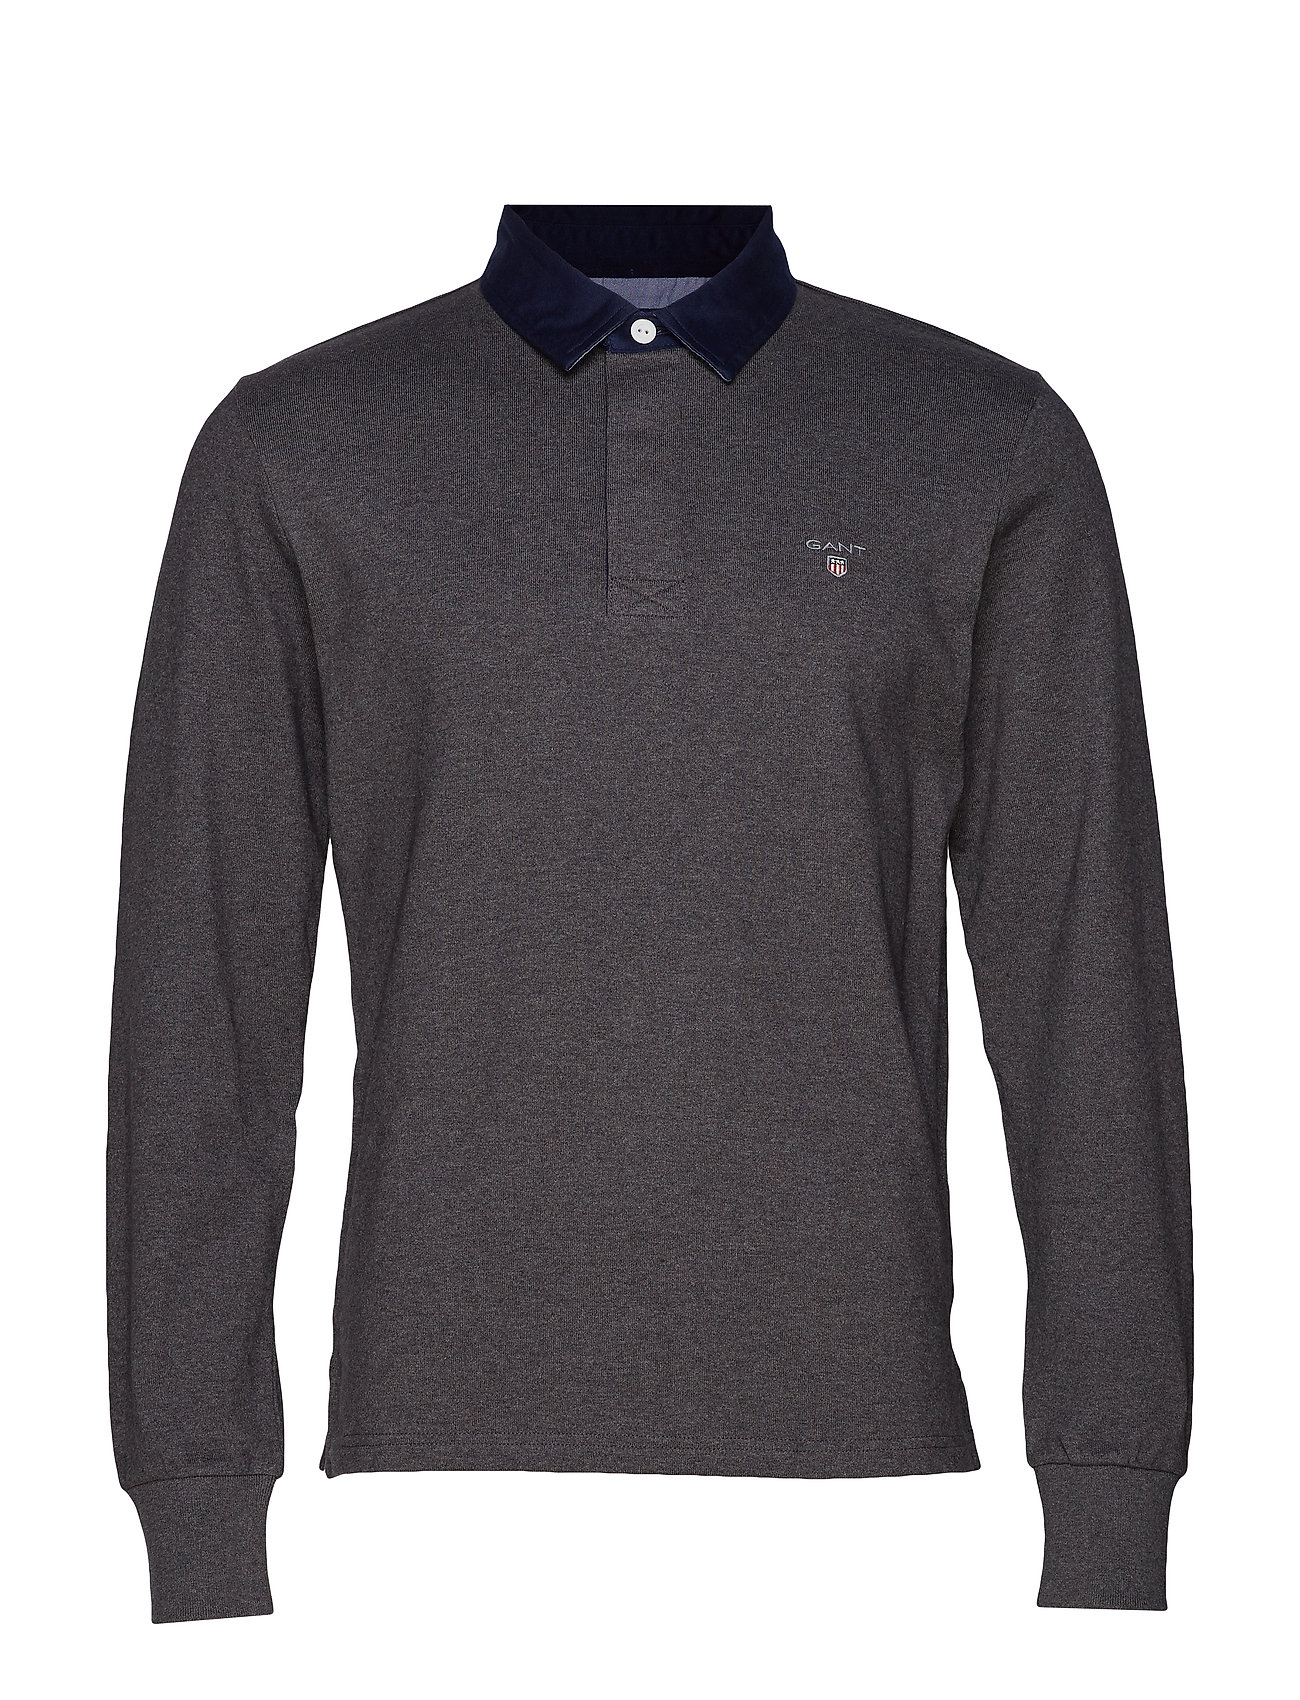 GANT THE ORIGINAL HEAVY RUGGER - CHARCOAL MELANGE